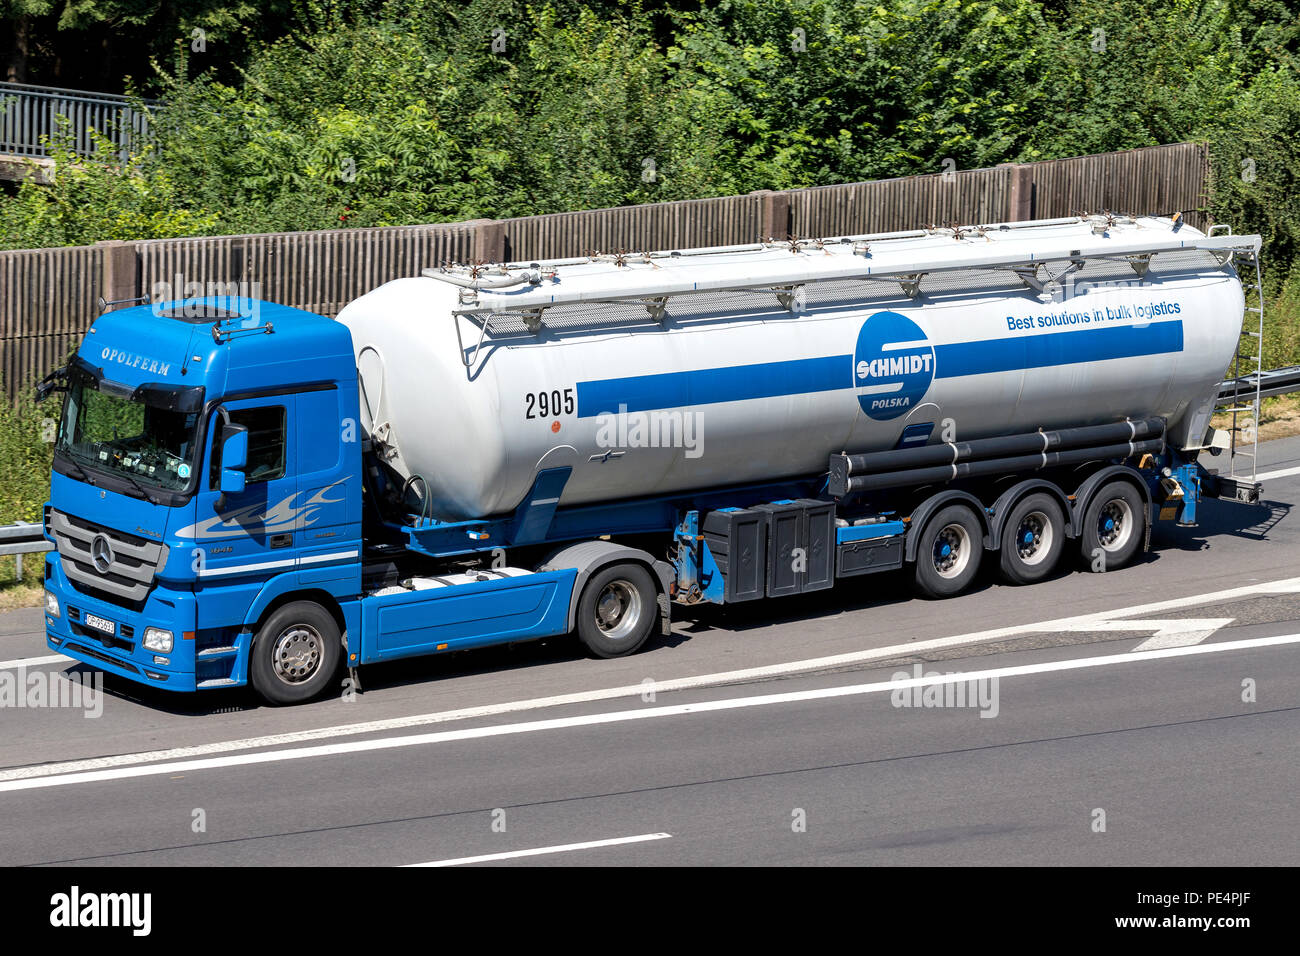 Schmidt Polska truck on motorway. Schmidt Polska is the Polish subsidiary of German Karl Schmidt Spedition with more than 160 vehicles. - Stock Image